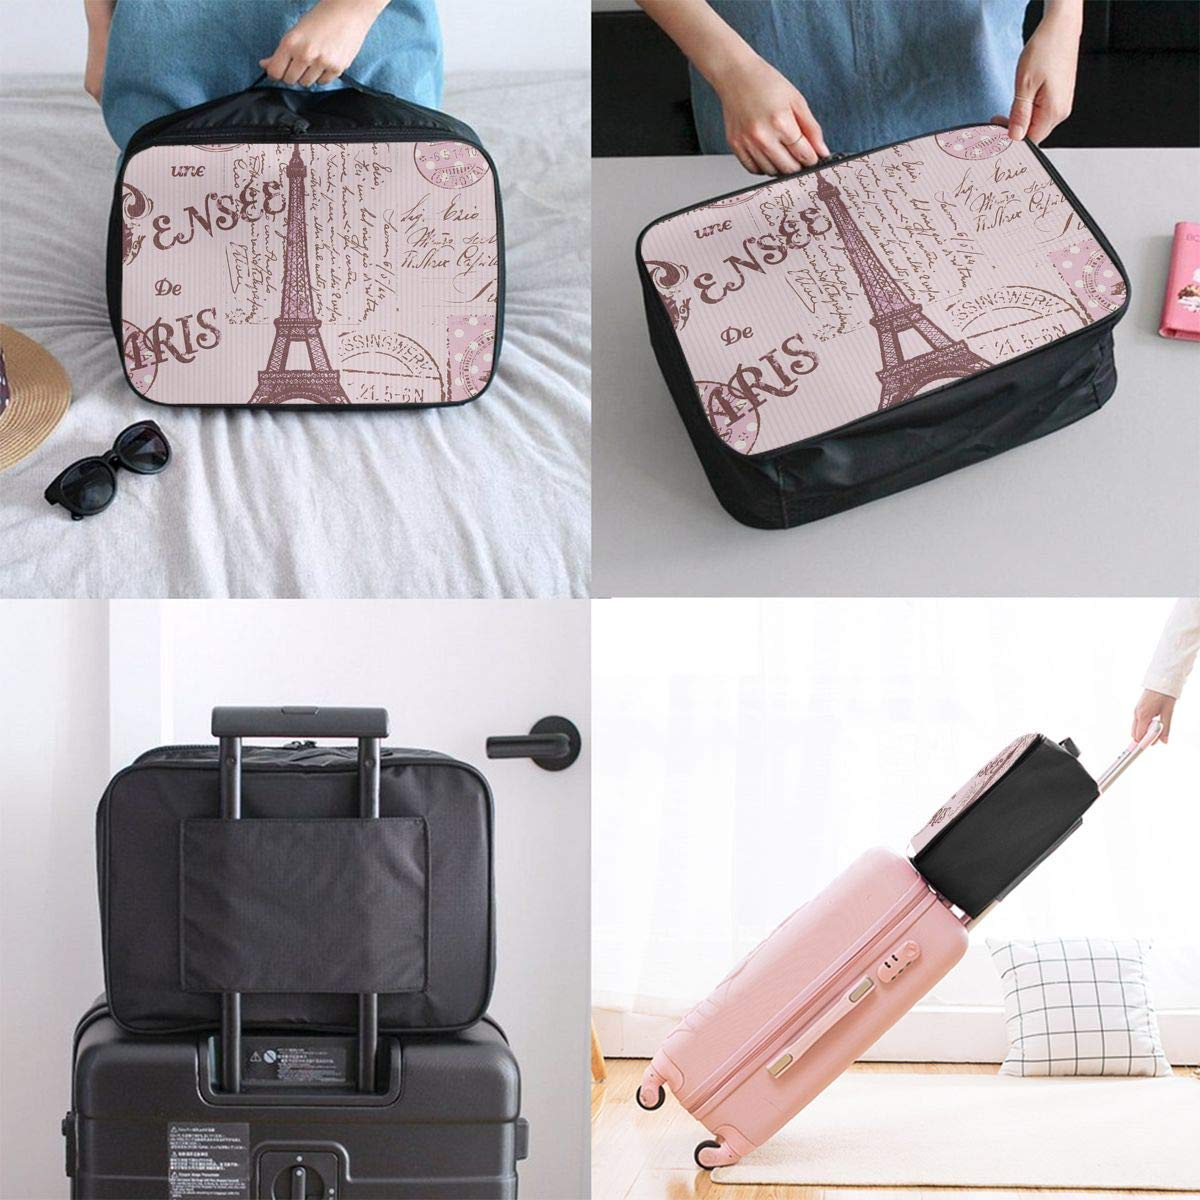 YueLJB Eiffel Towel Old Stamp Lightweight Large Capacity Portable Luggage Bag Travel Duffel Bag Storage Carry Luggage Duffle Tote Bag